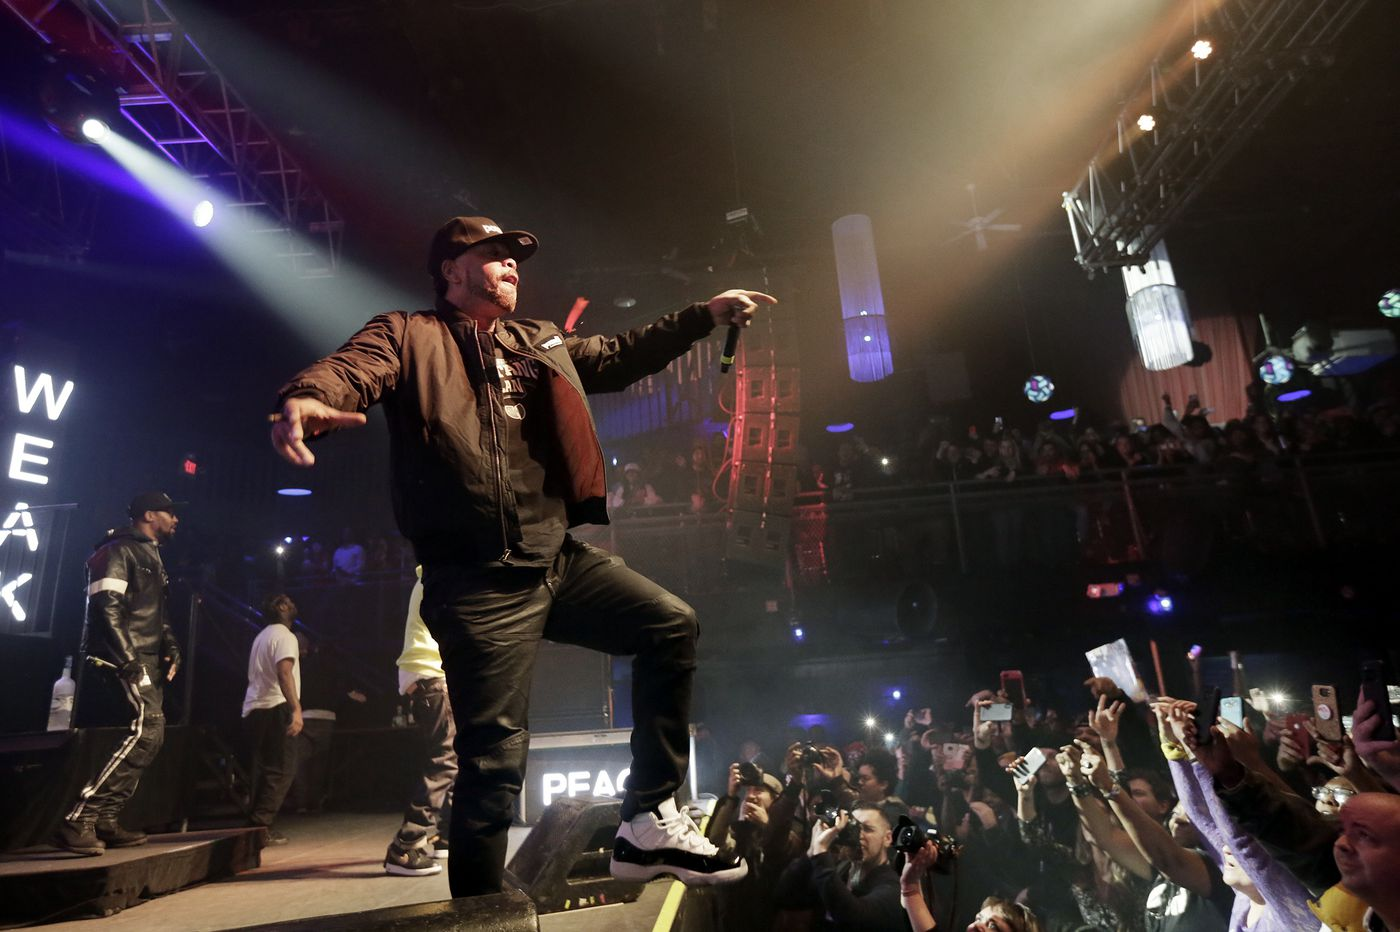 Wu-Tang Clan marks 25 years of '36 Chambers' with a raucous tour kickoff at Franklin Music Hall